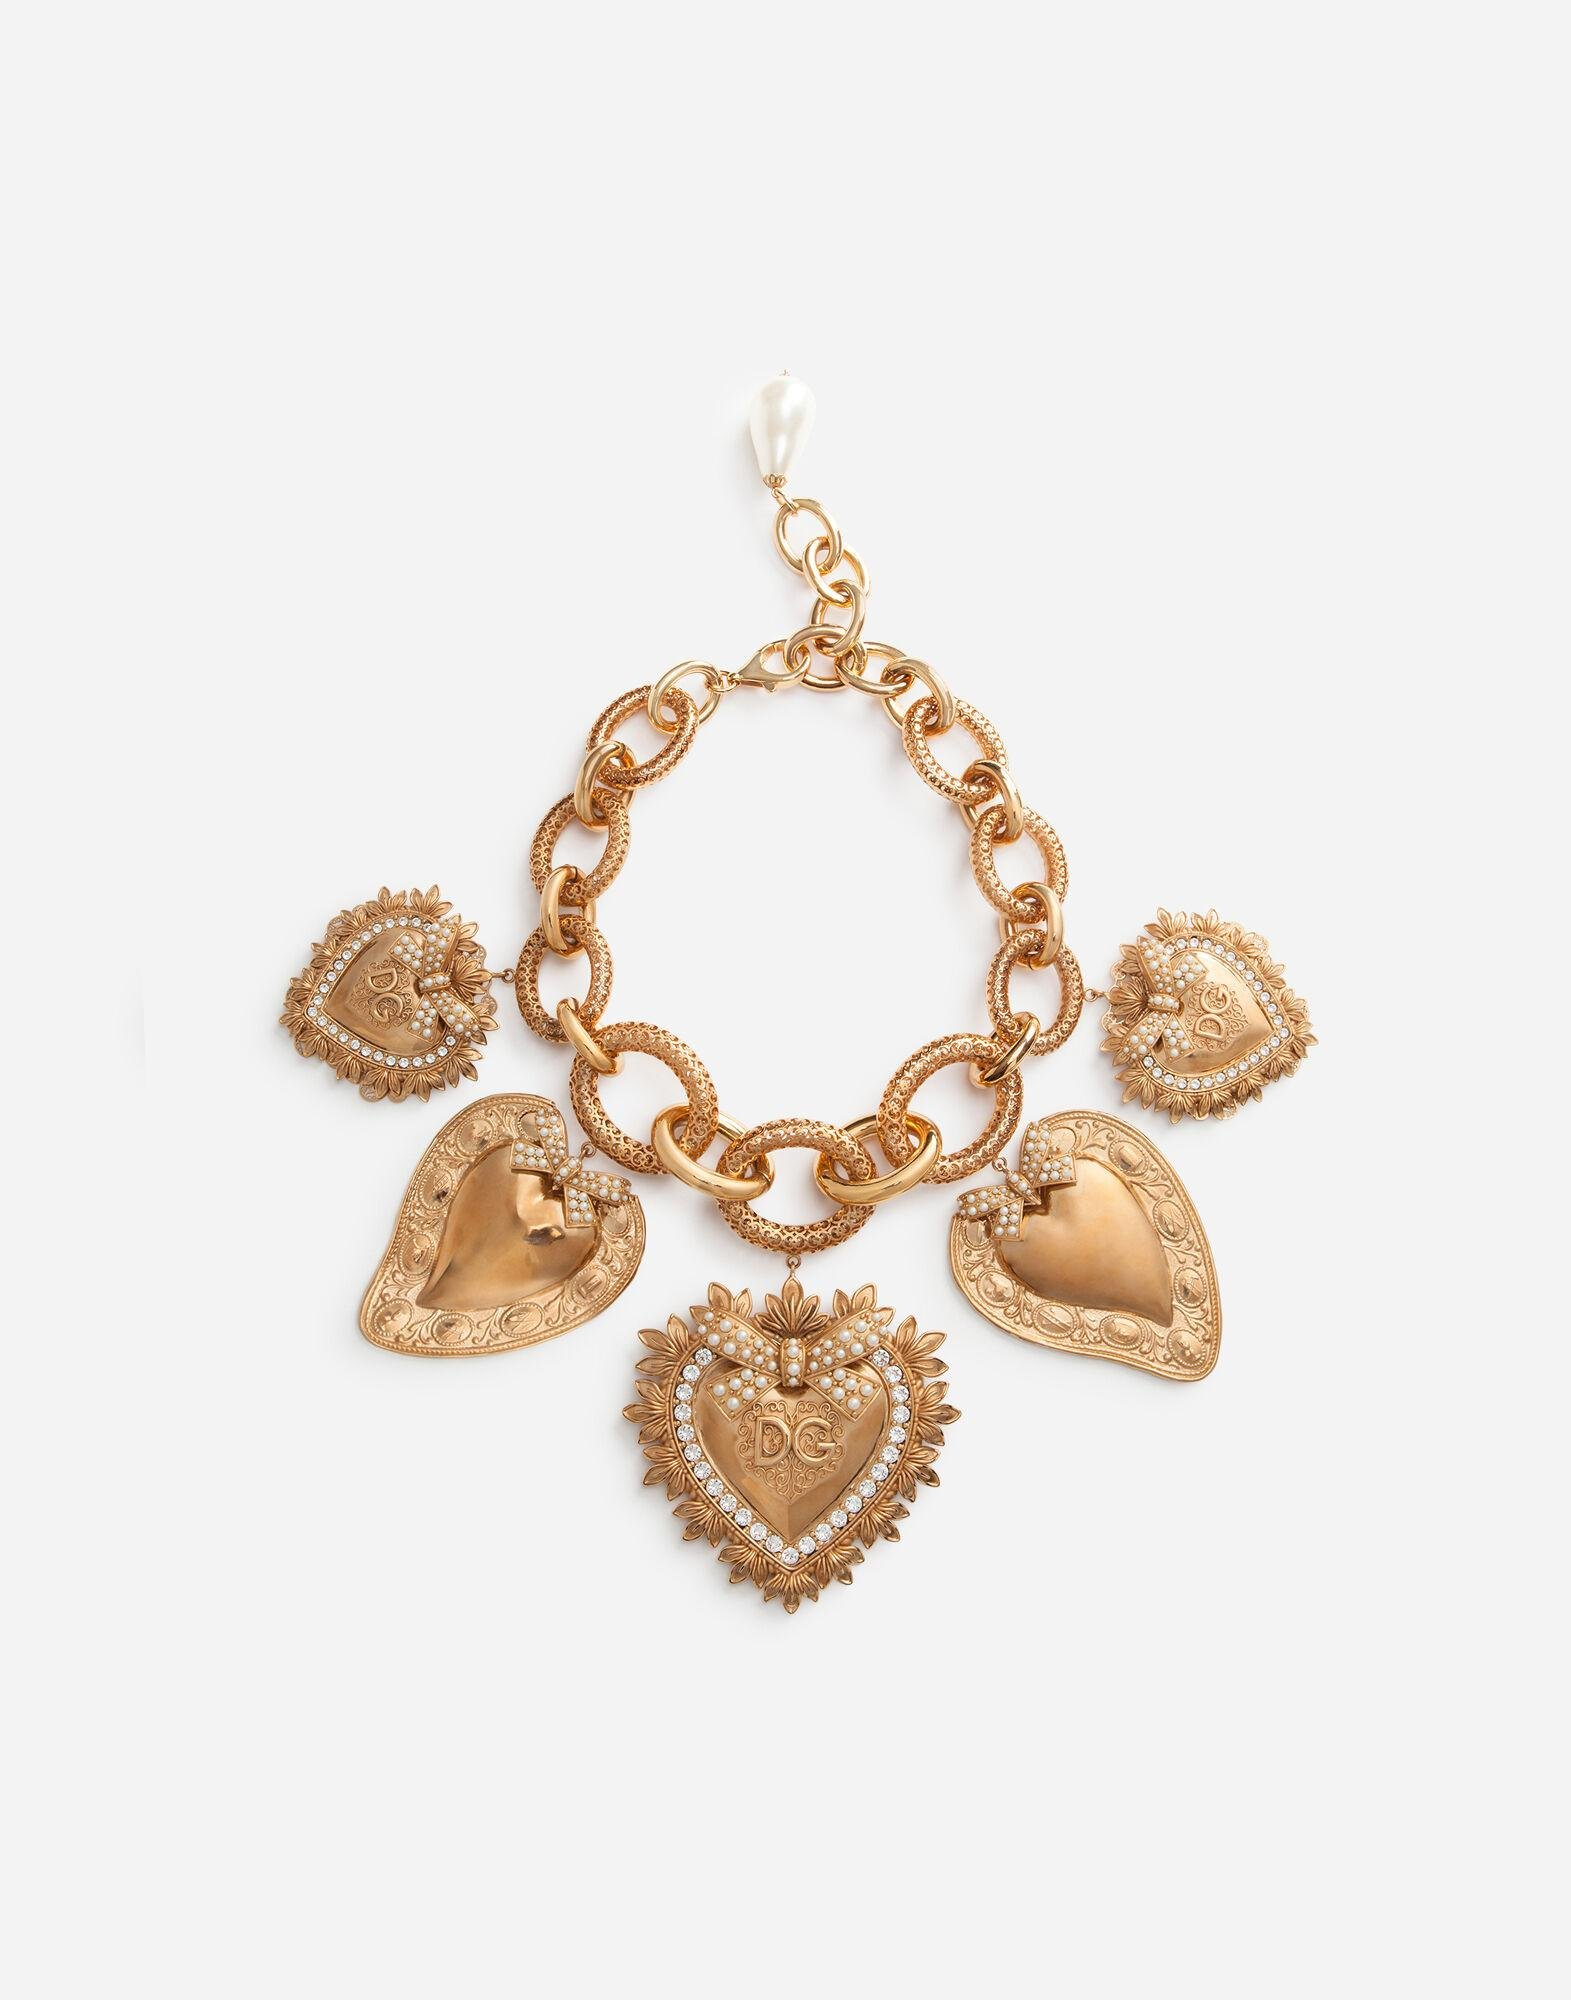 Necklace with sacred heart charms